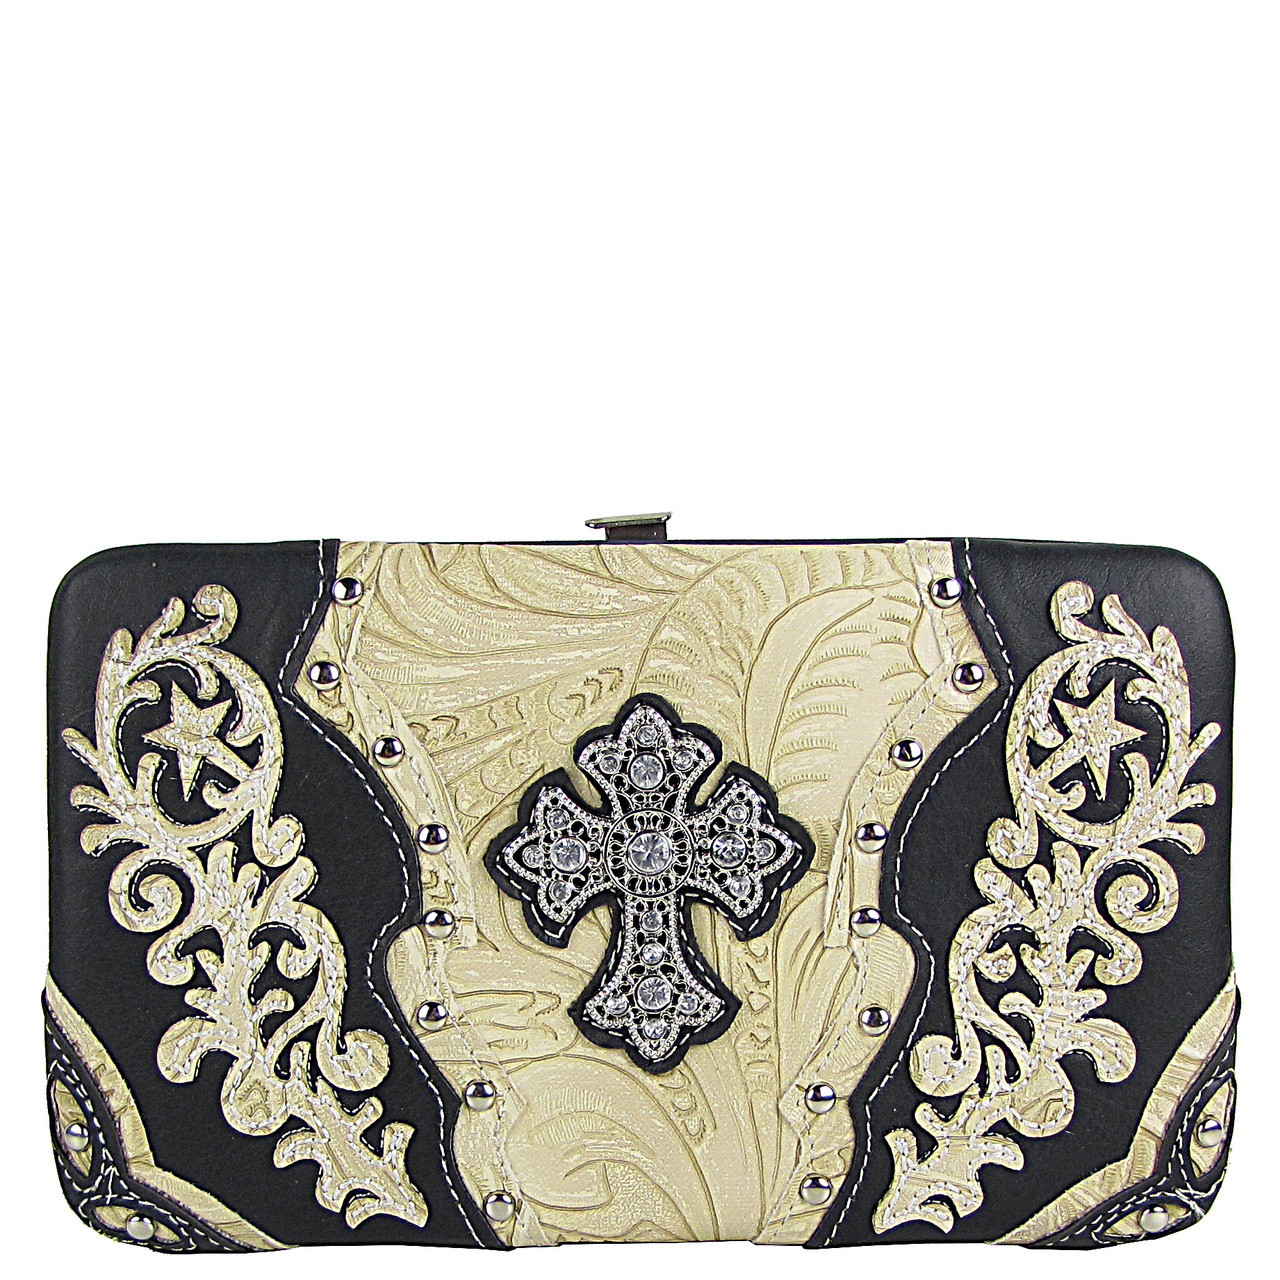 BLACK STUDDED RHINESTONE TOOLED CROSS LOOK FLAT THICK WALLET FW2-04121BLK